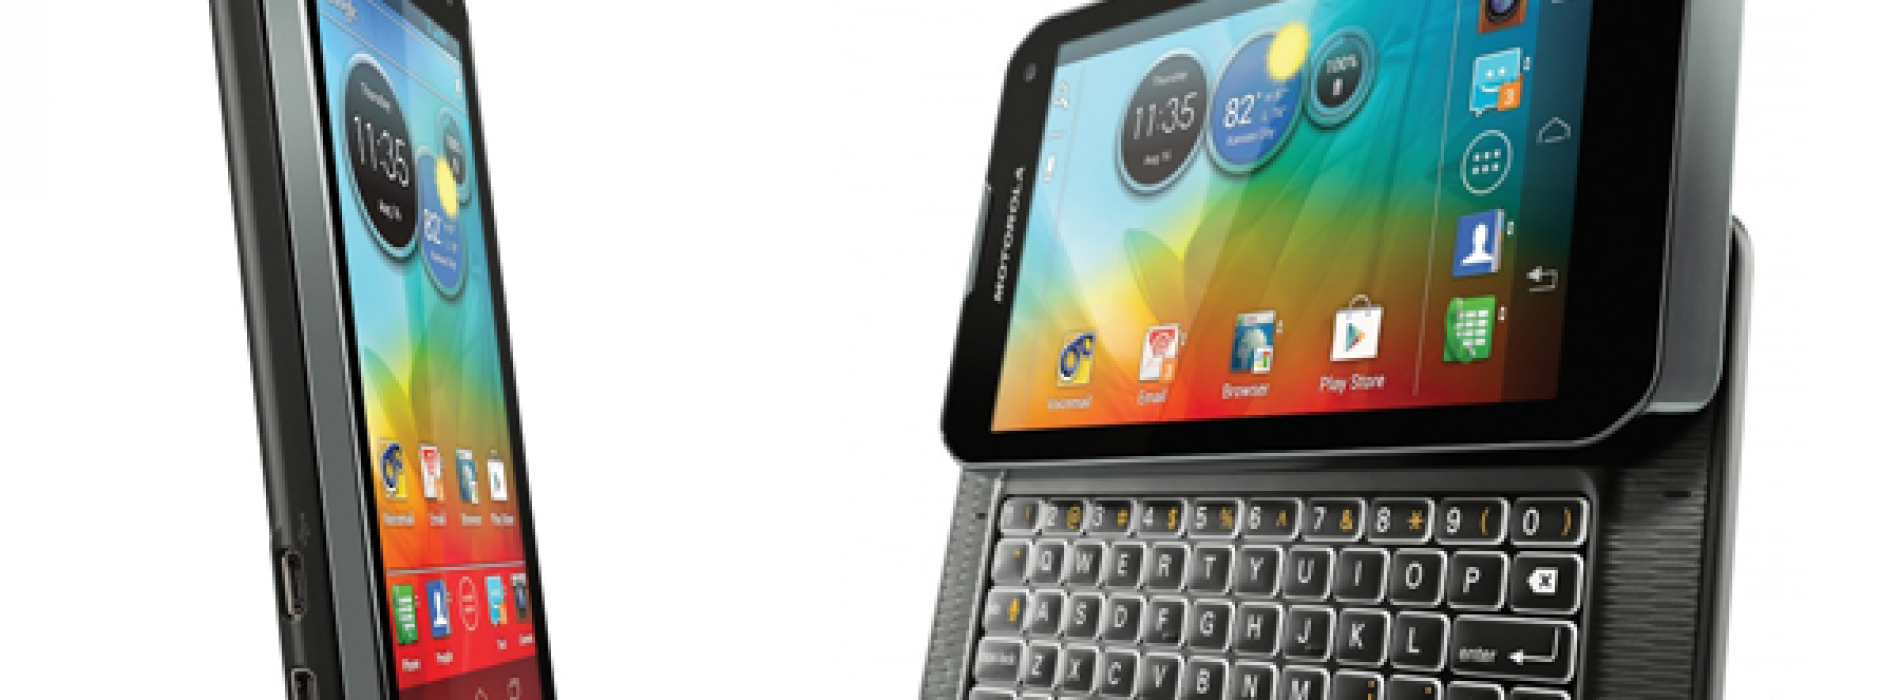 Sprint announces Photon Q, their first LTE handset with QWERTY keyboard